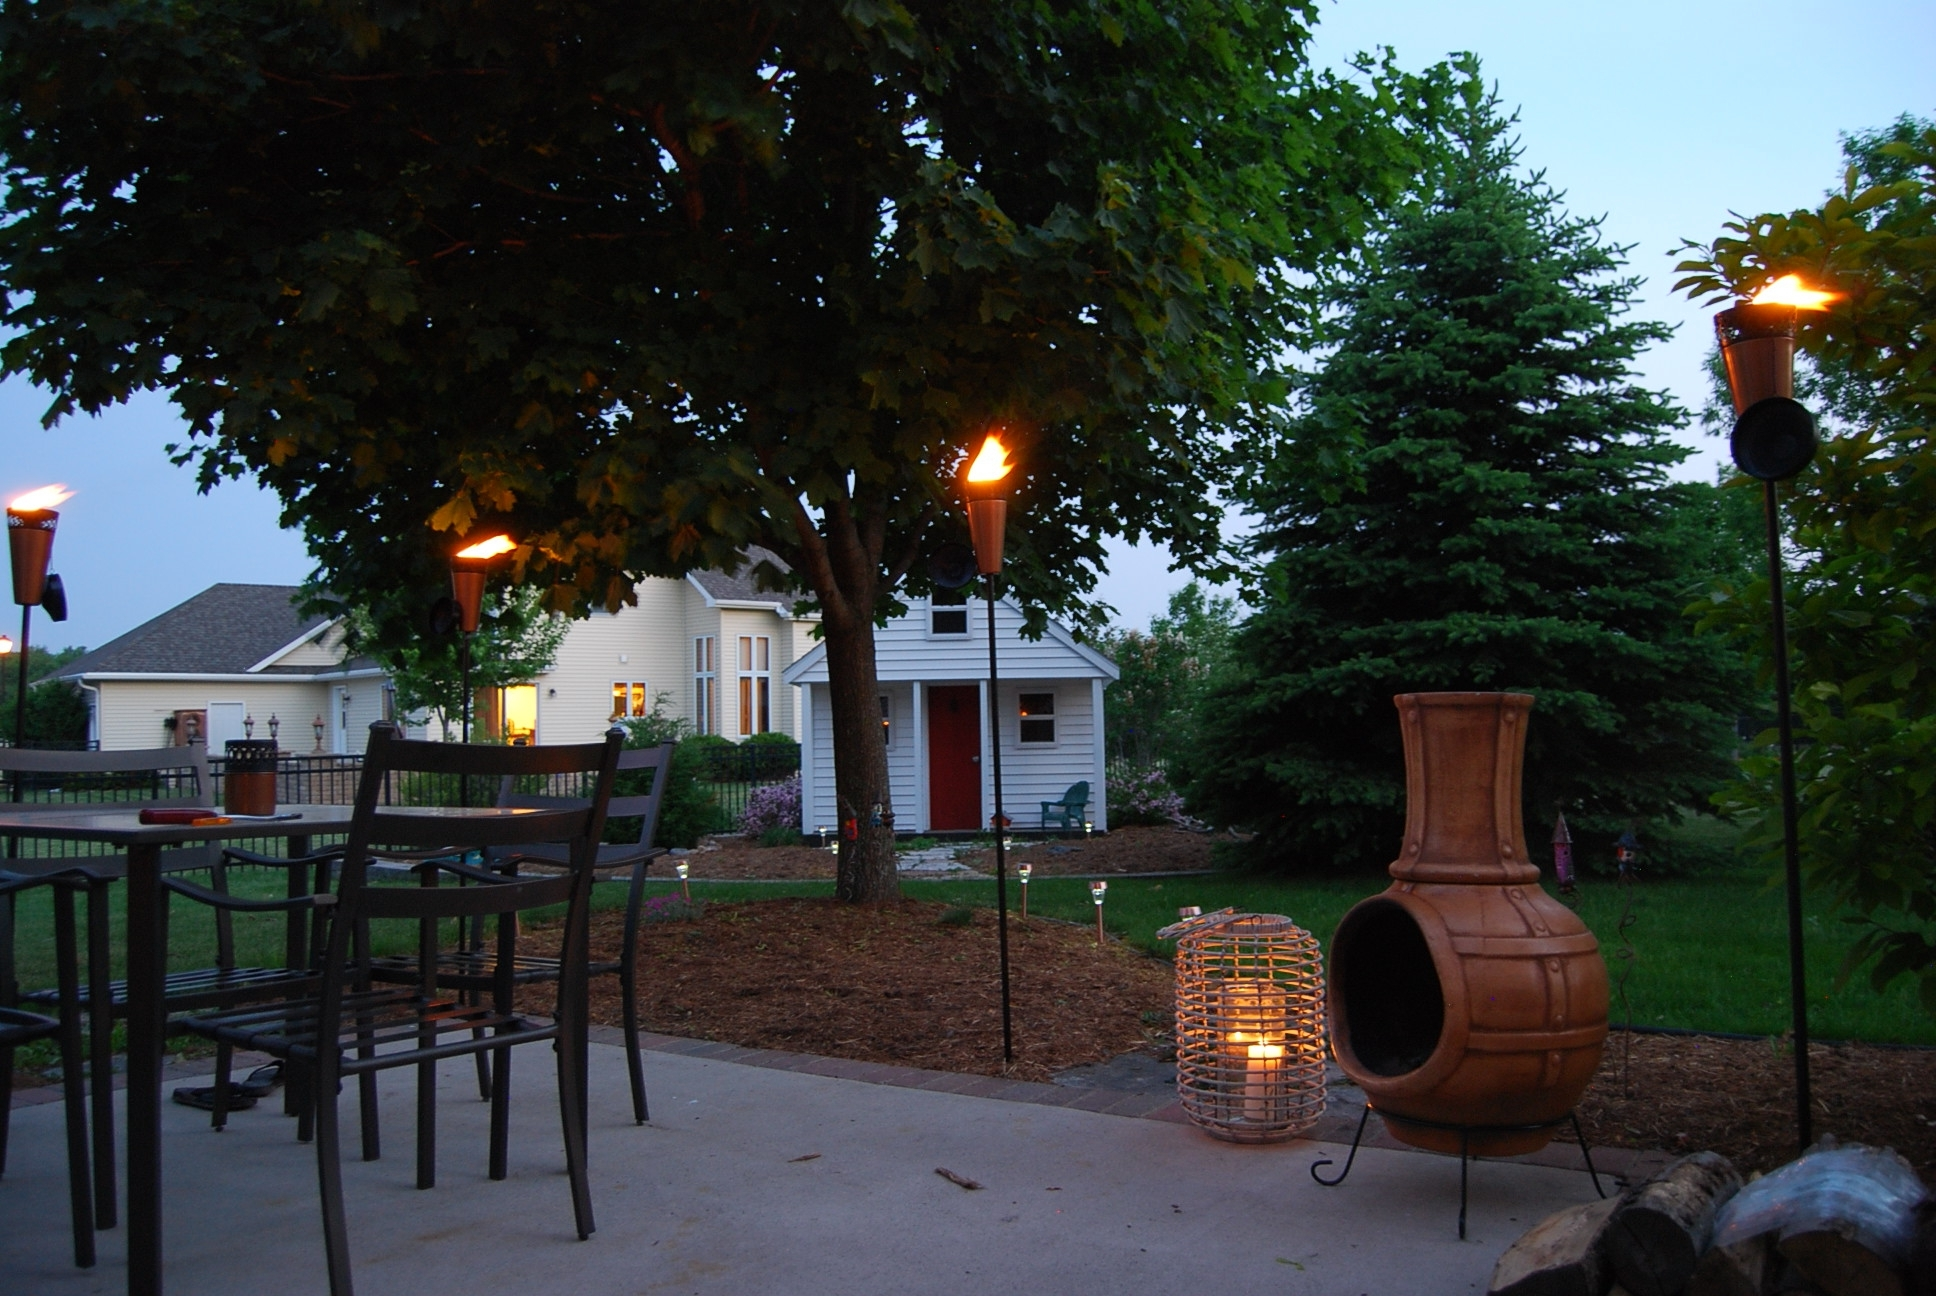 Patio Torches New Propane Tiki Torches For Sale Led Flame Lamp For 2019 Outdoor Tiki Lanterns (Gallery 20 of 20)